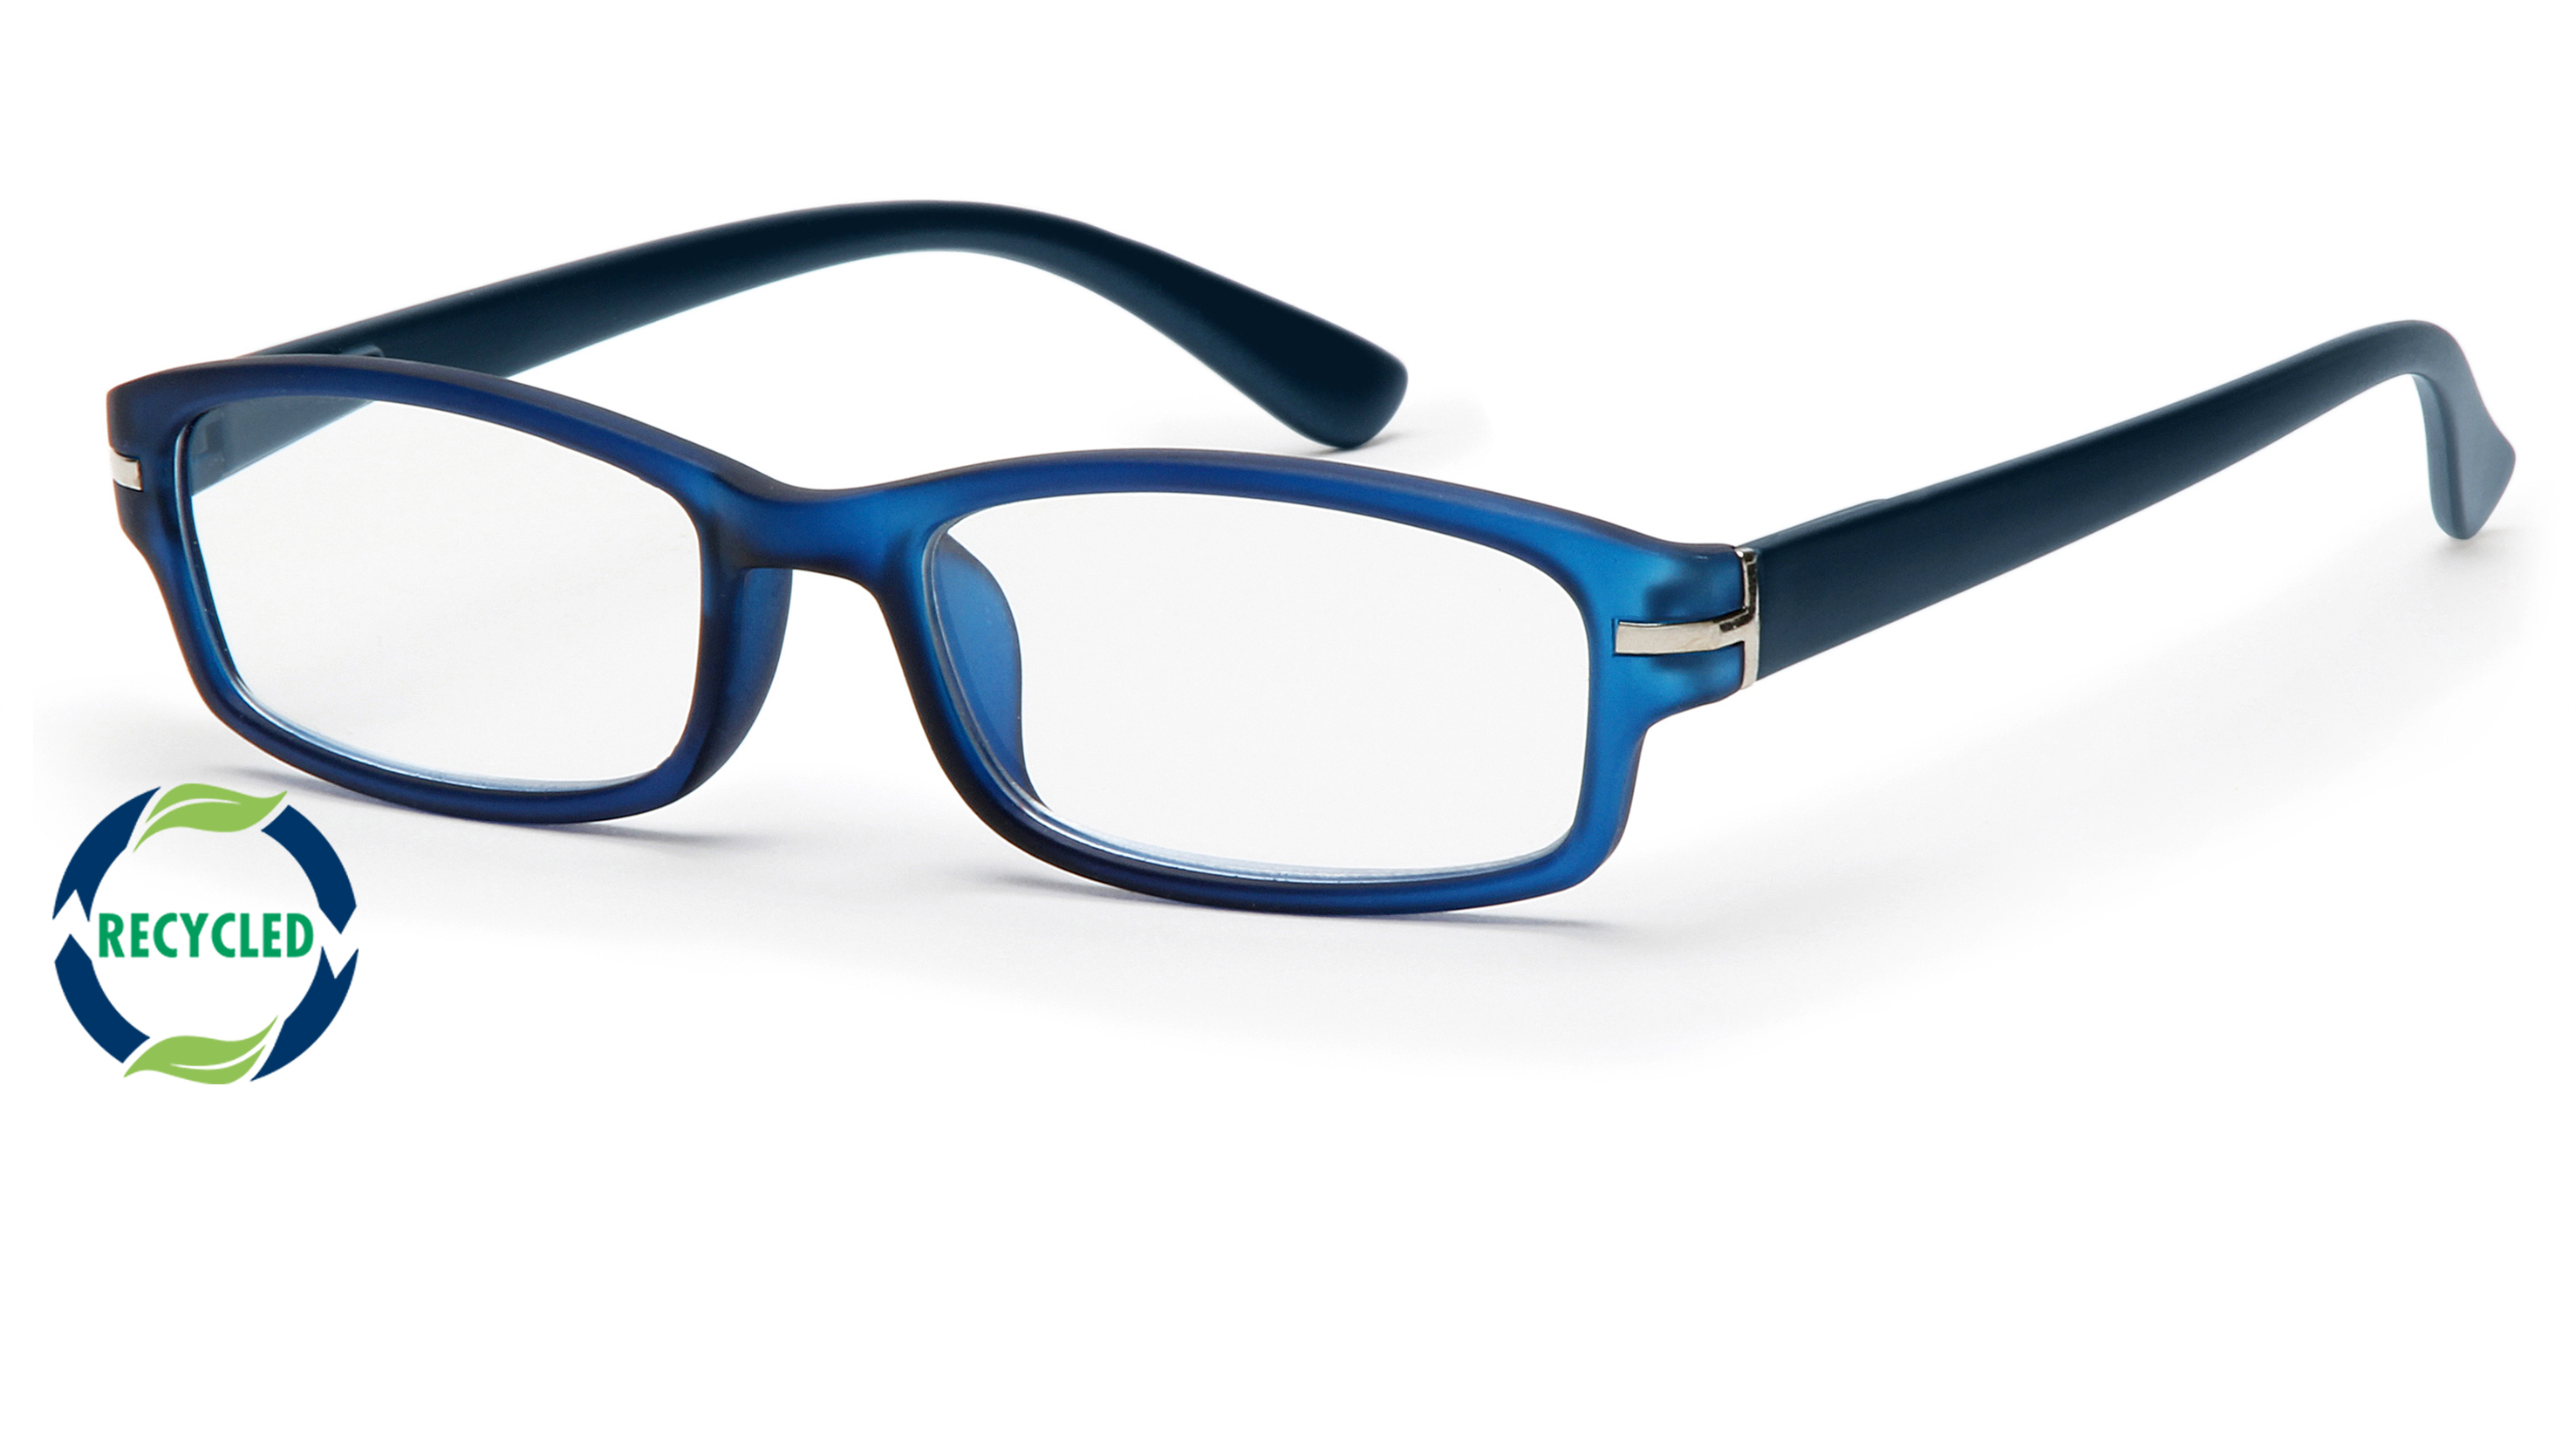 Filtral recycling reading glasses sydney blue